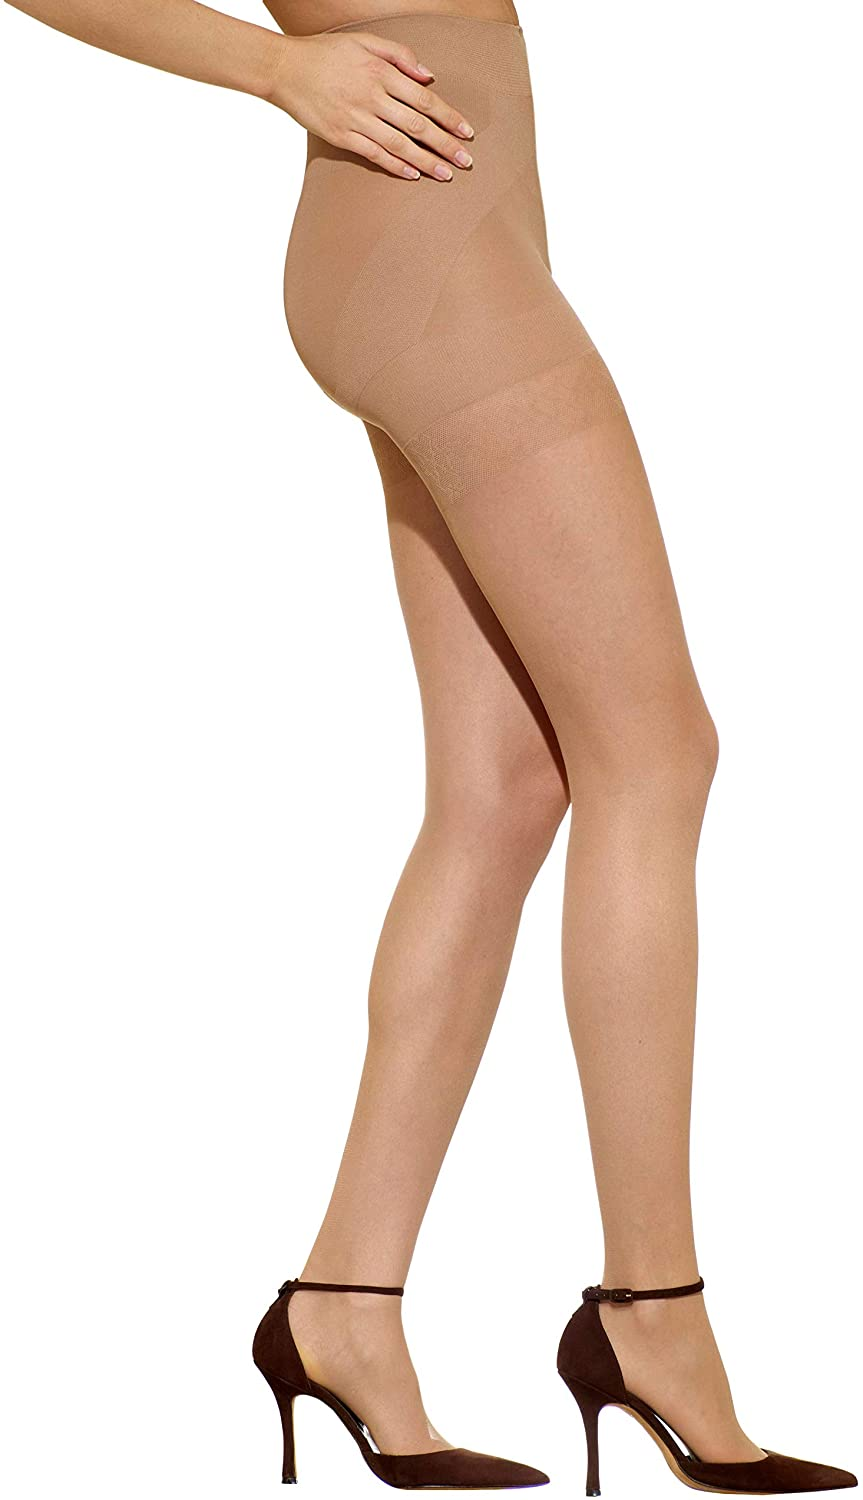 Silkies Women's Ultra Shapely Perfection Sheer Shaping Pantyhose